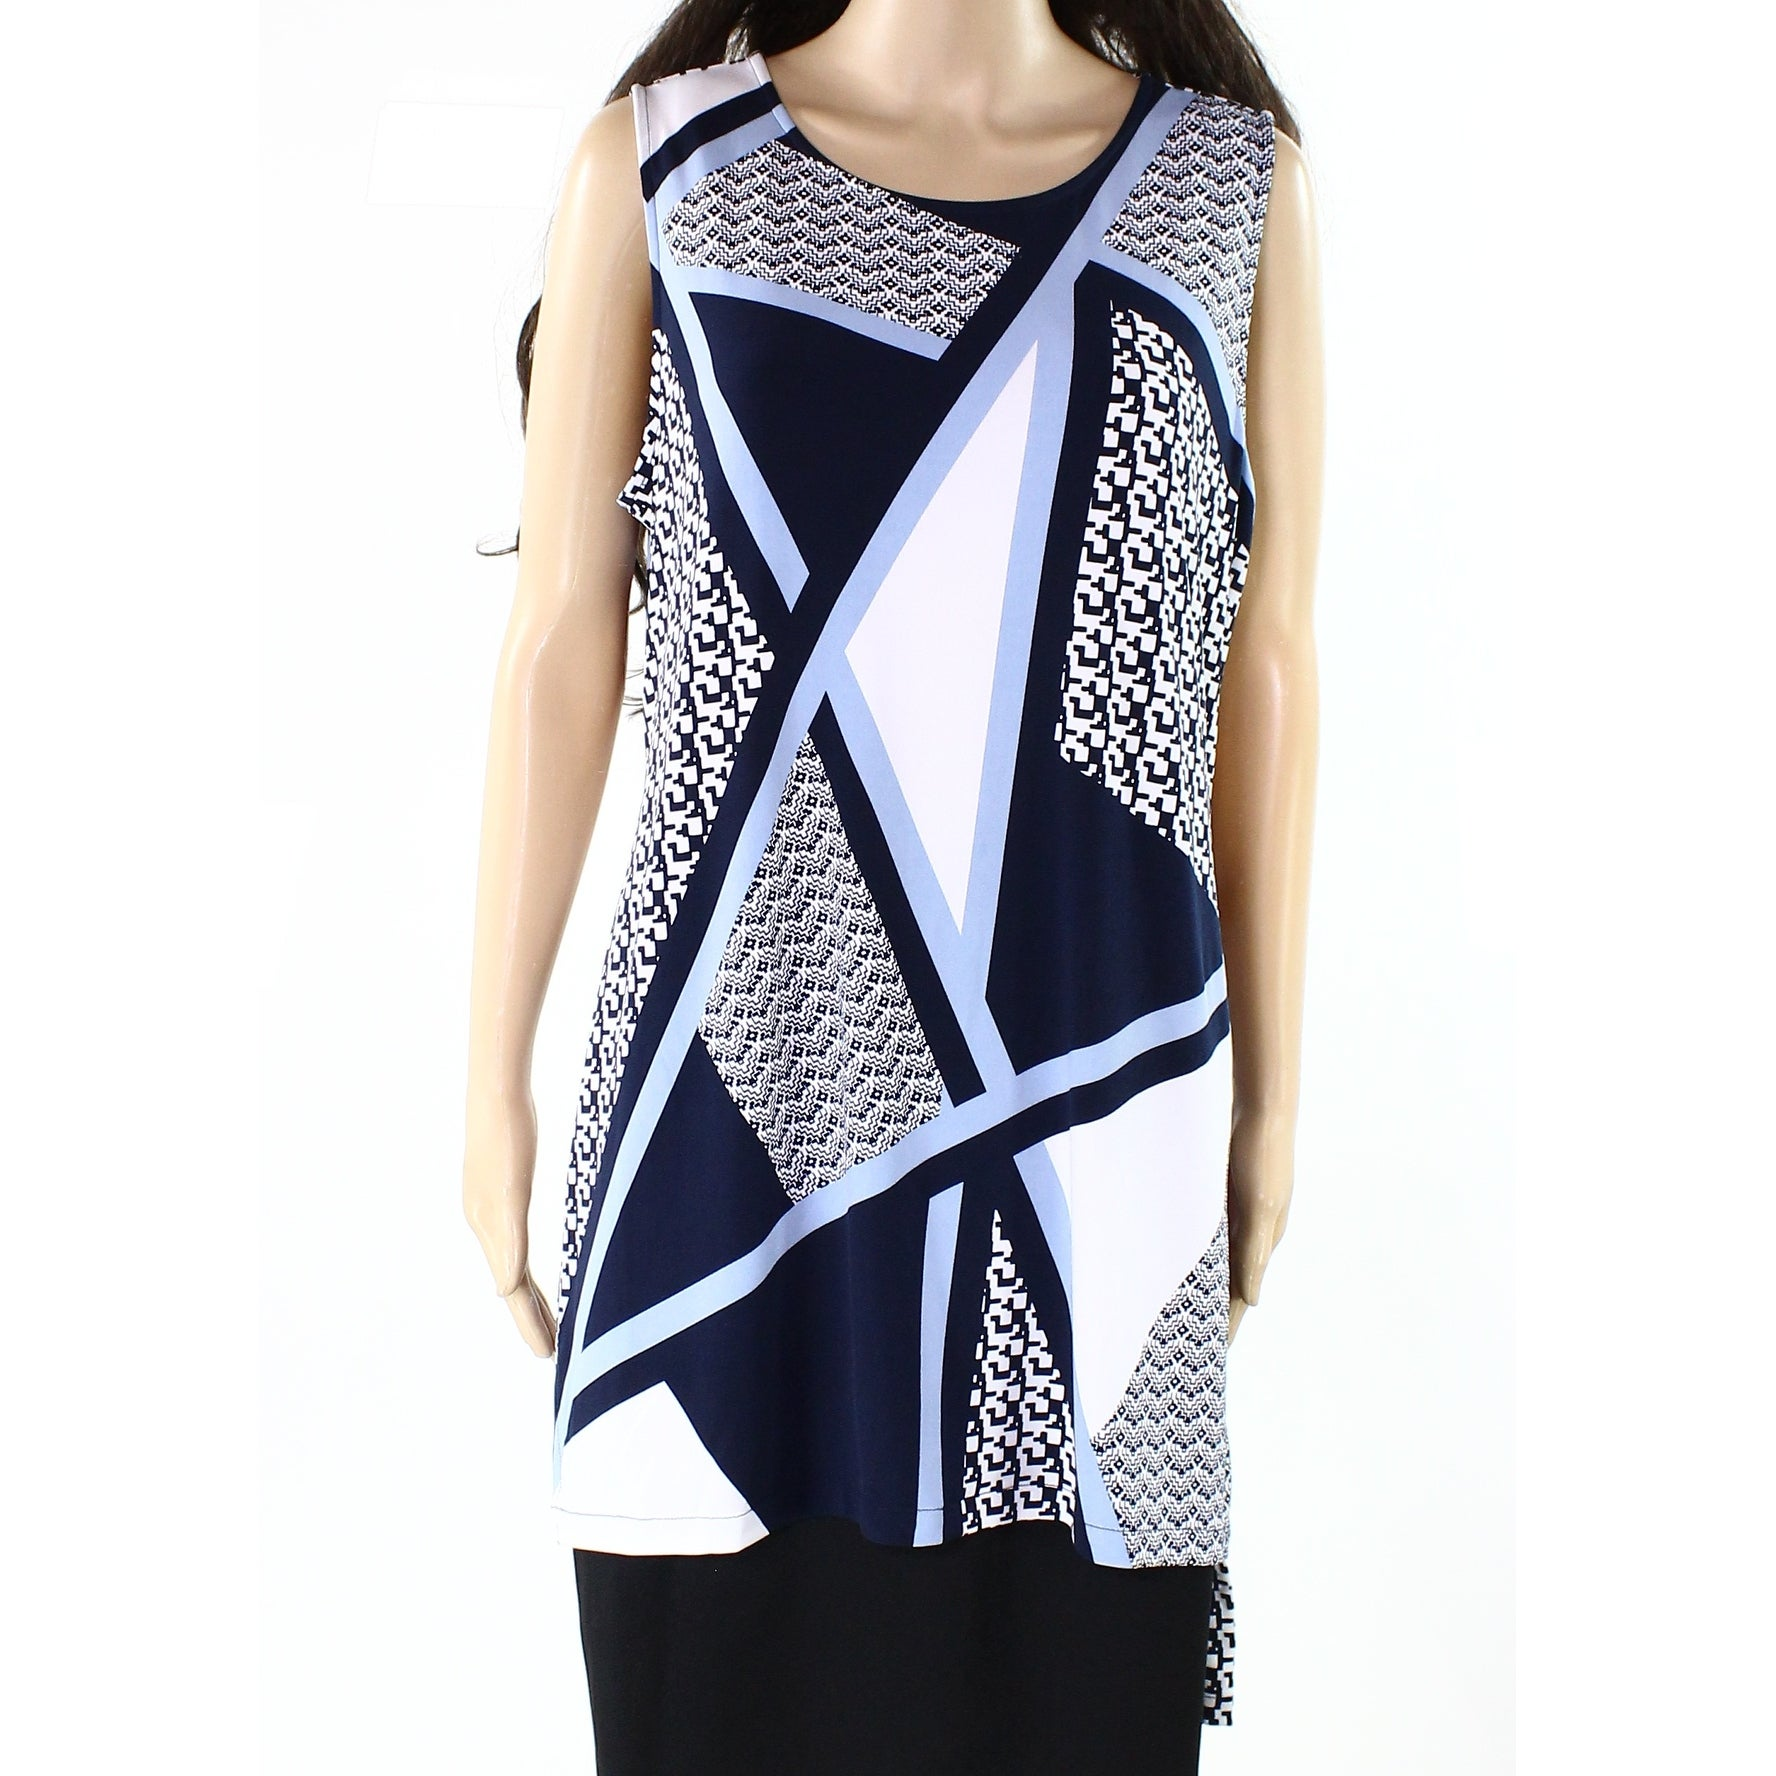 57883d86198 Shop Alfani NEW Blue White Womens Size XL Mixed-Print High-Low Tunic Top -  Free Shipping On Orders Over $45 - Overstock - 21428737